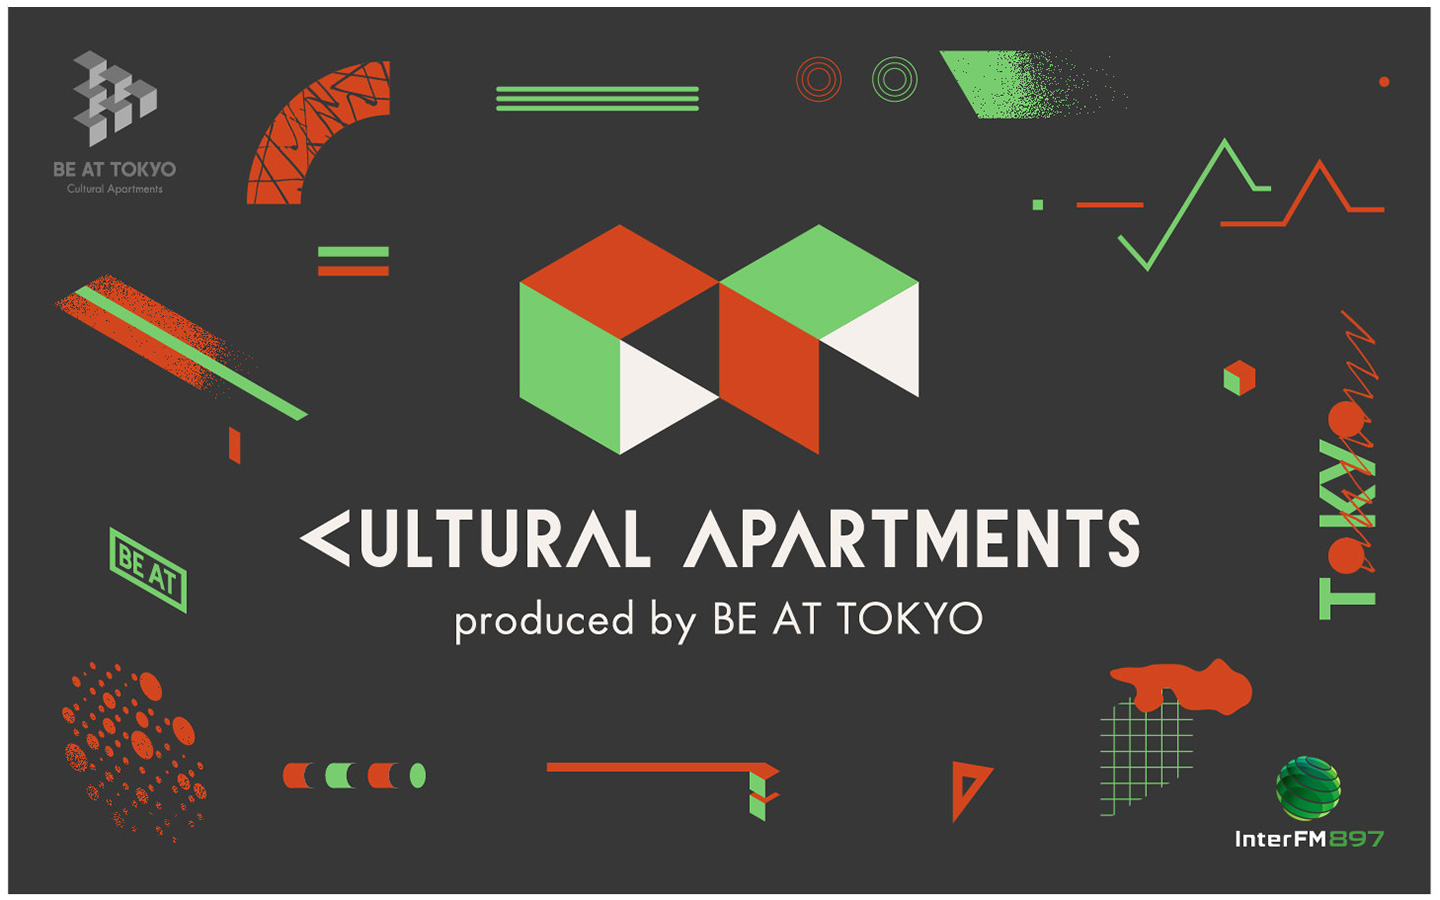 Cultural Apartments produced by BE AT TOKYO